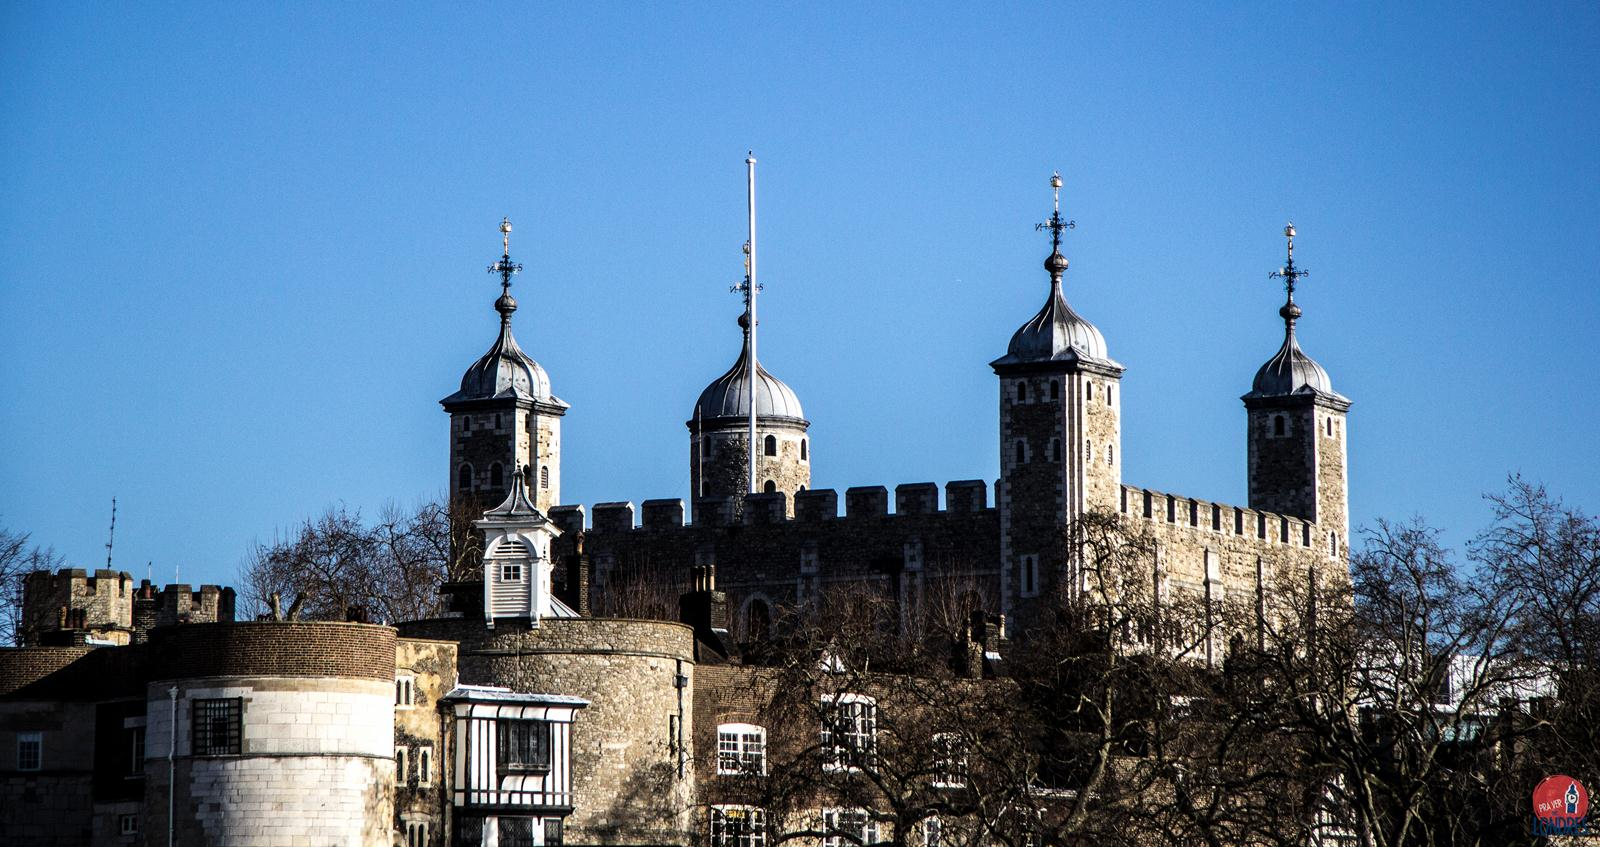 tour de pubs Pra ver em Londres - Tower of London